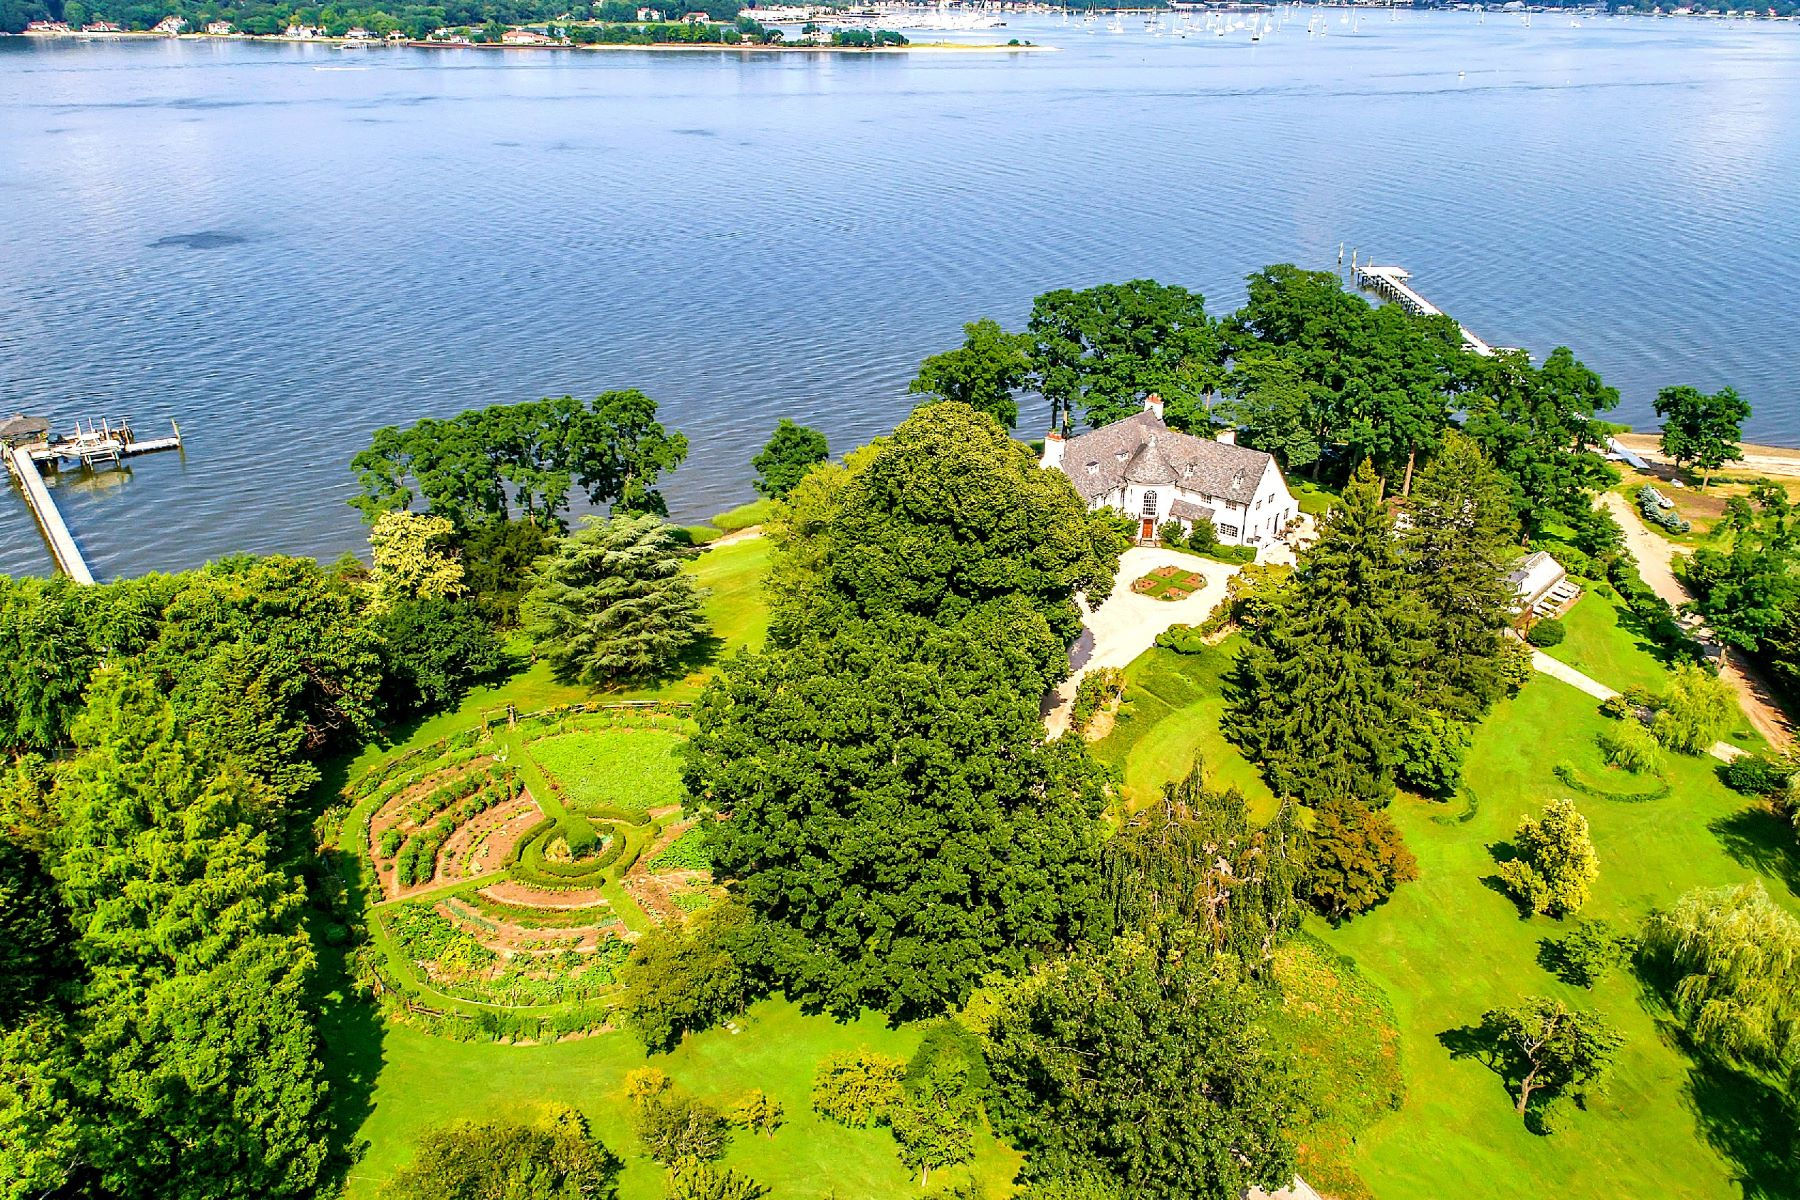 Single Family Homes for Sale at Great Neck 229 Dock Ln Great Neck, New York 11024 United States